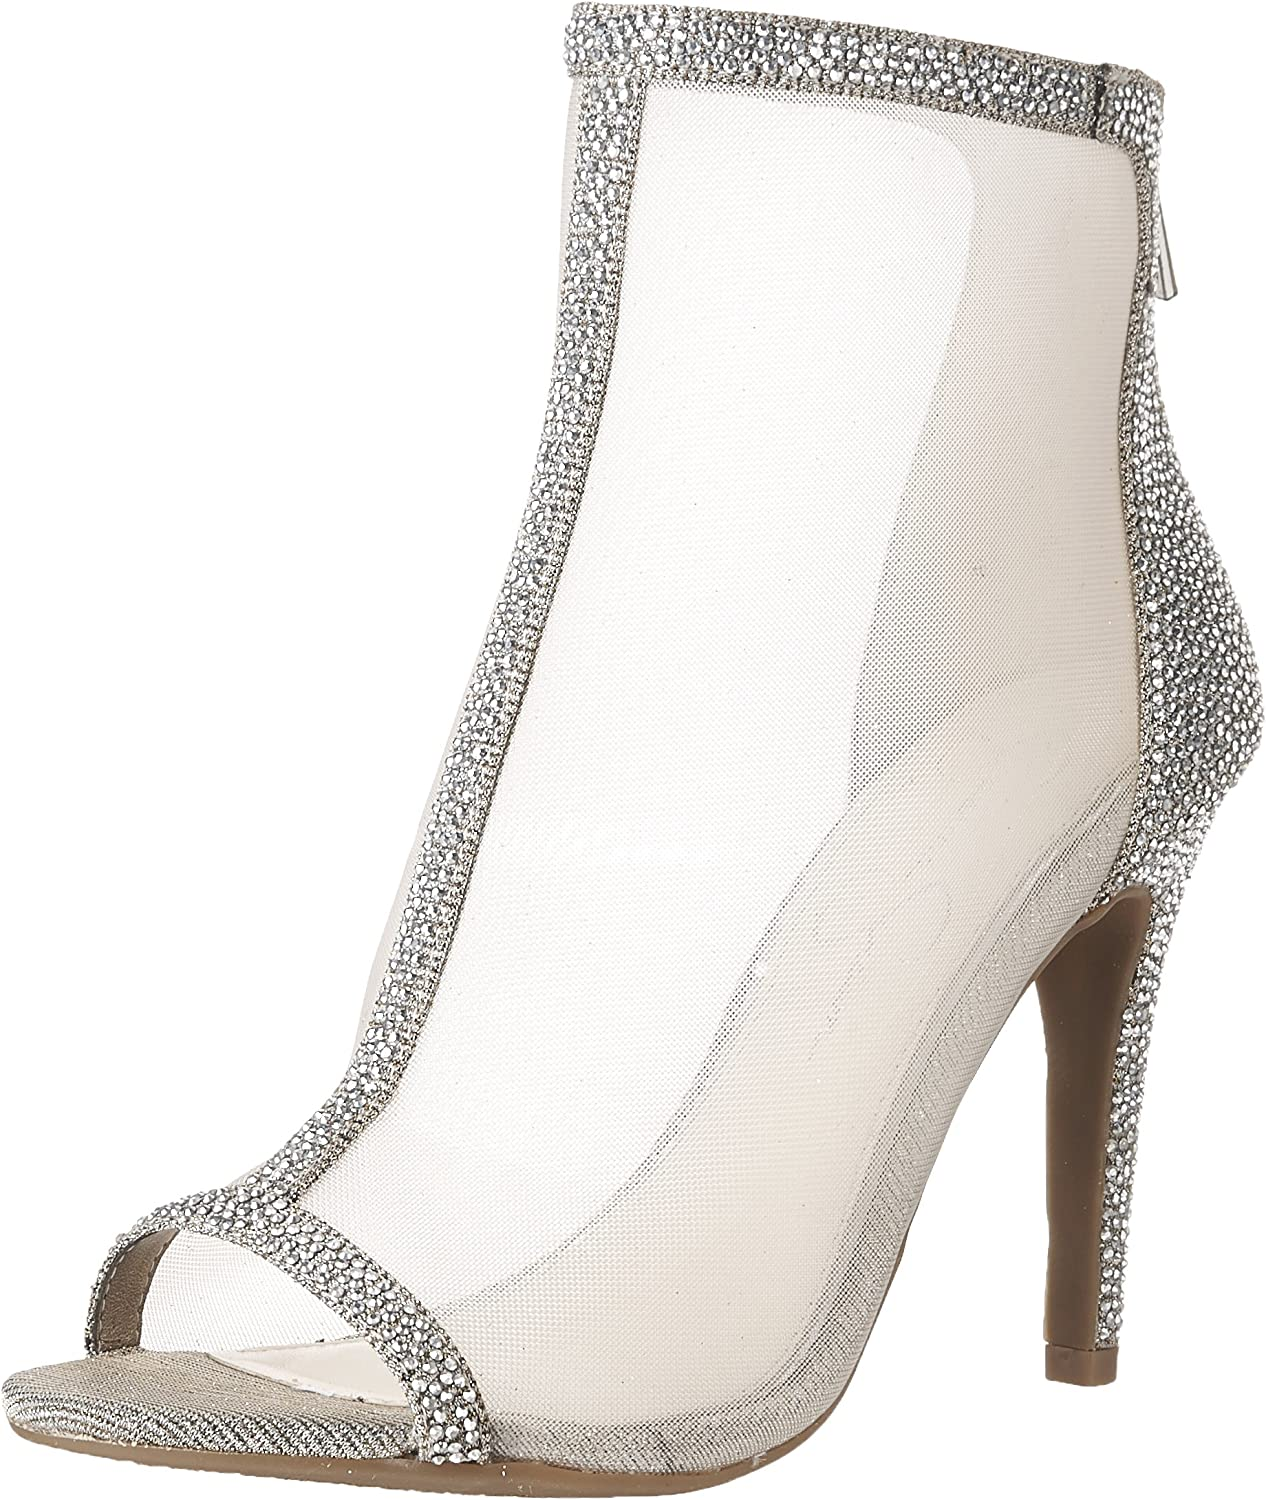 Jessica Simpson Womens ENERGEE Fashion Sandals